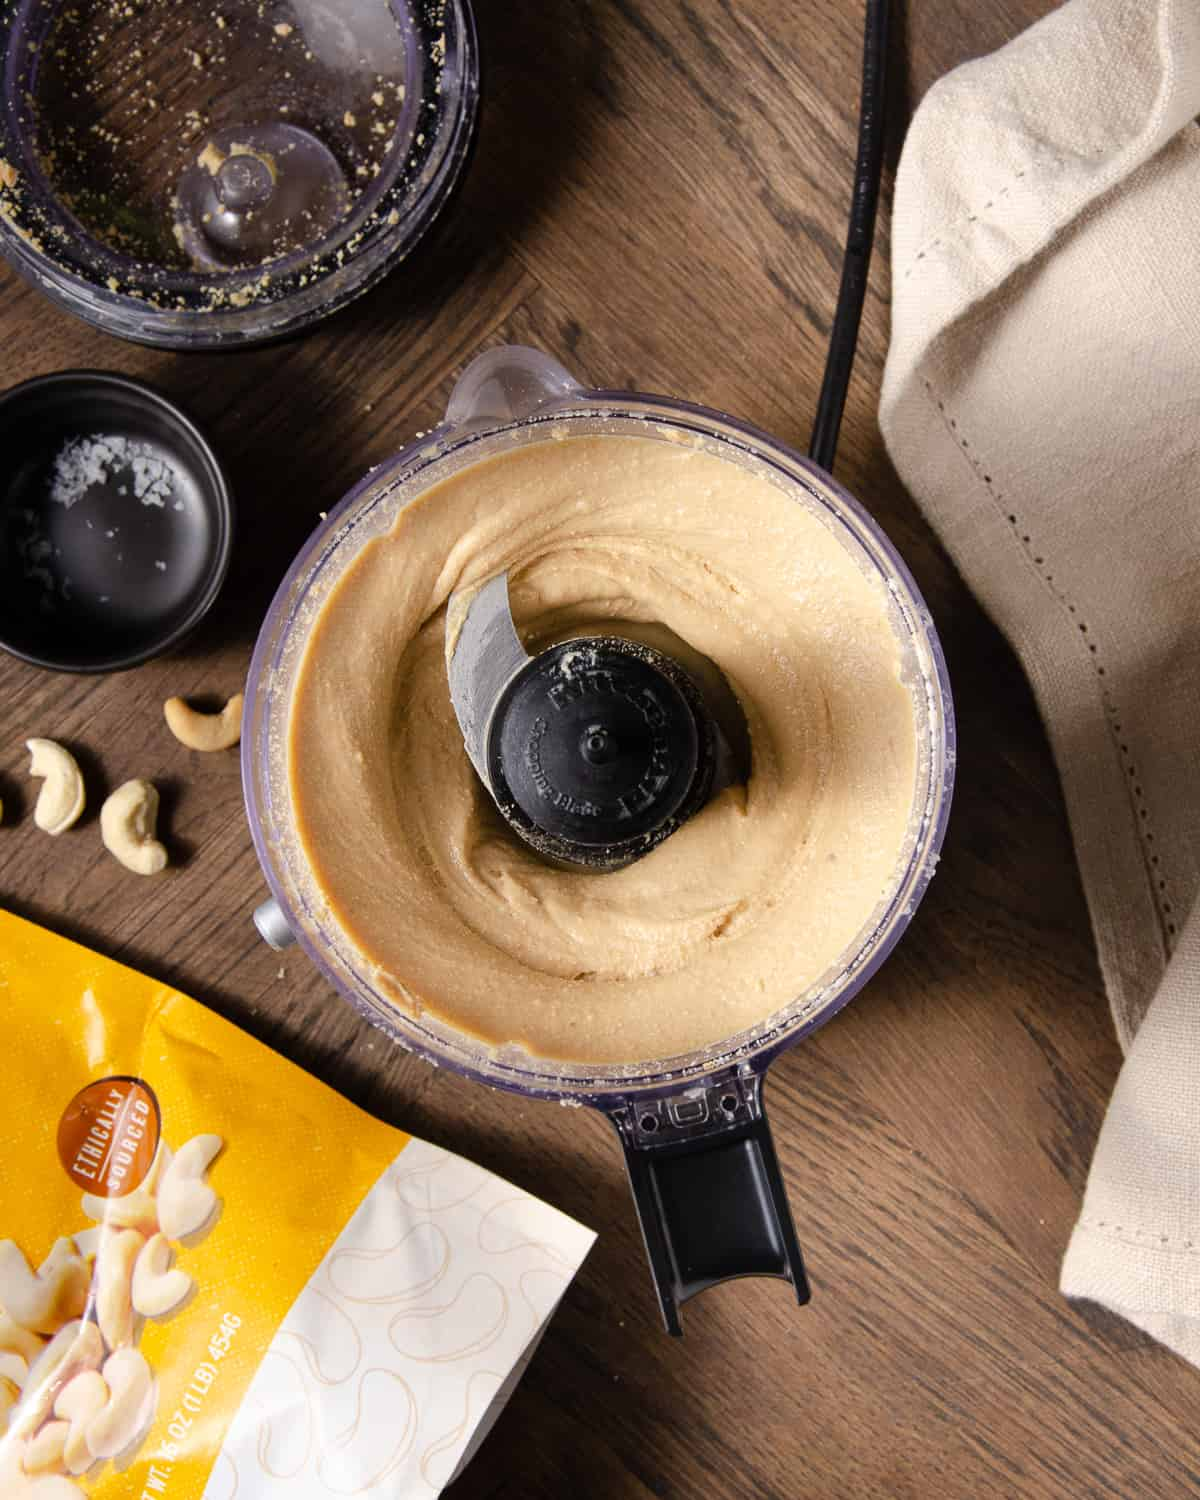 Cashew butter in the food processor after 8-10 minutes.